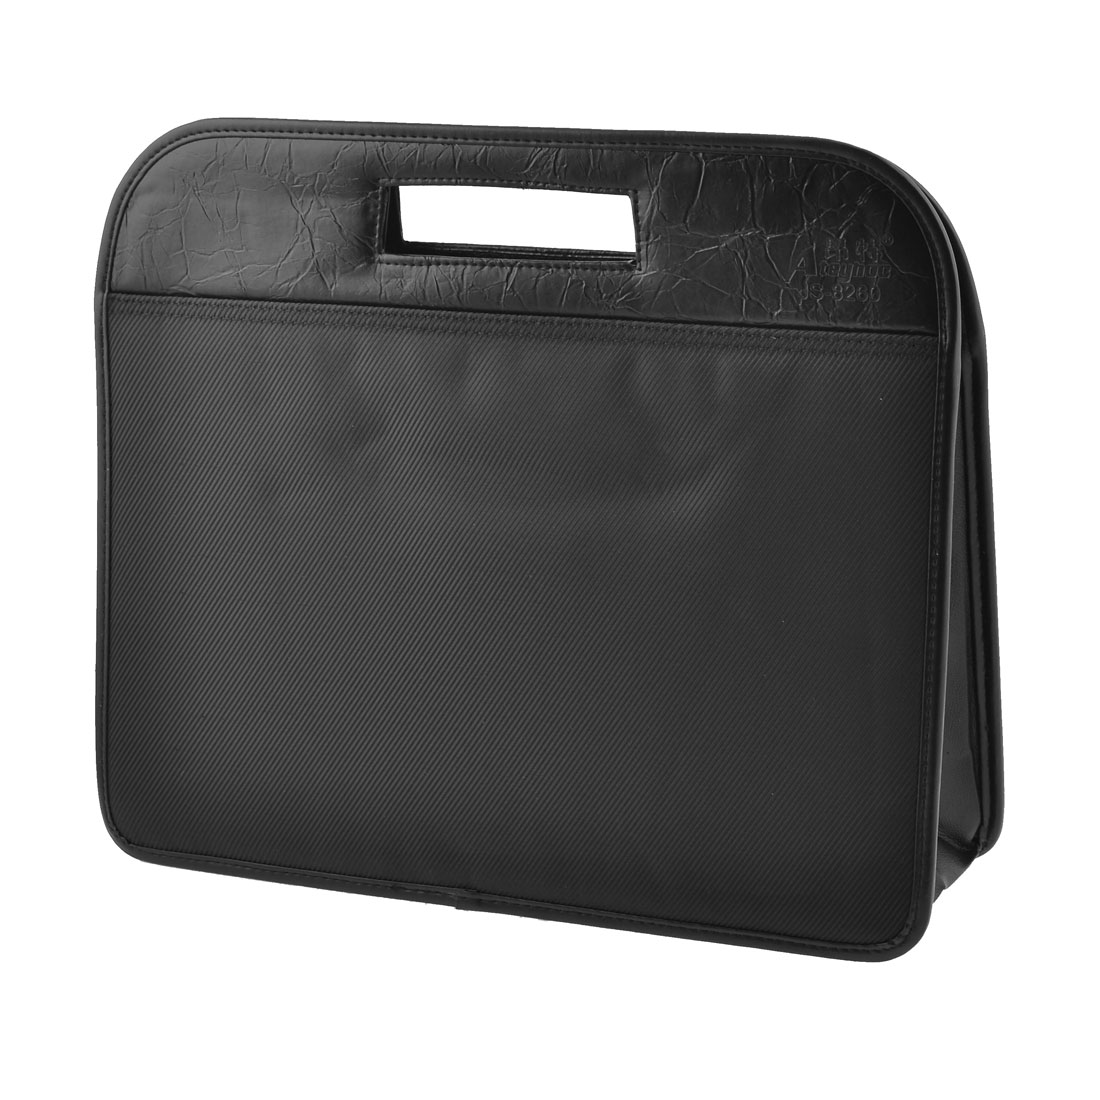 39cm x 33cm 3 Pockets Zip Up Nylon Black File Documents Bag Holder